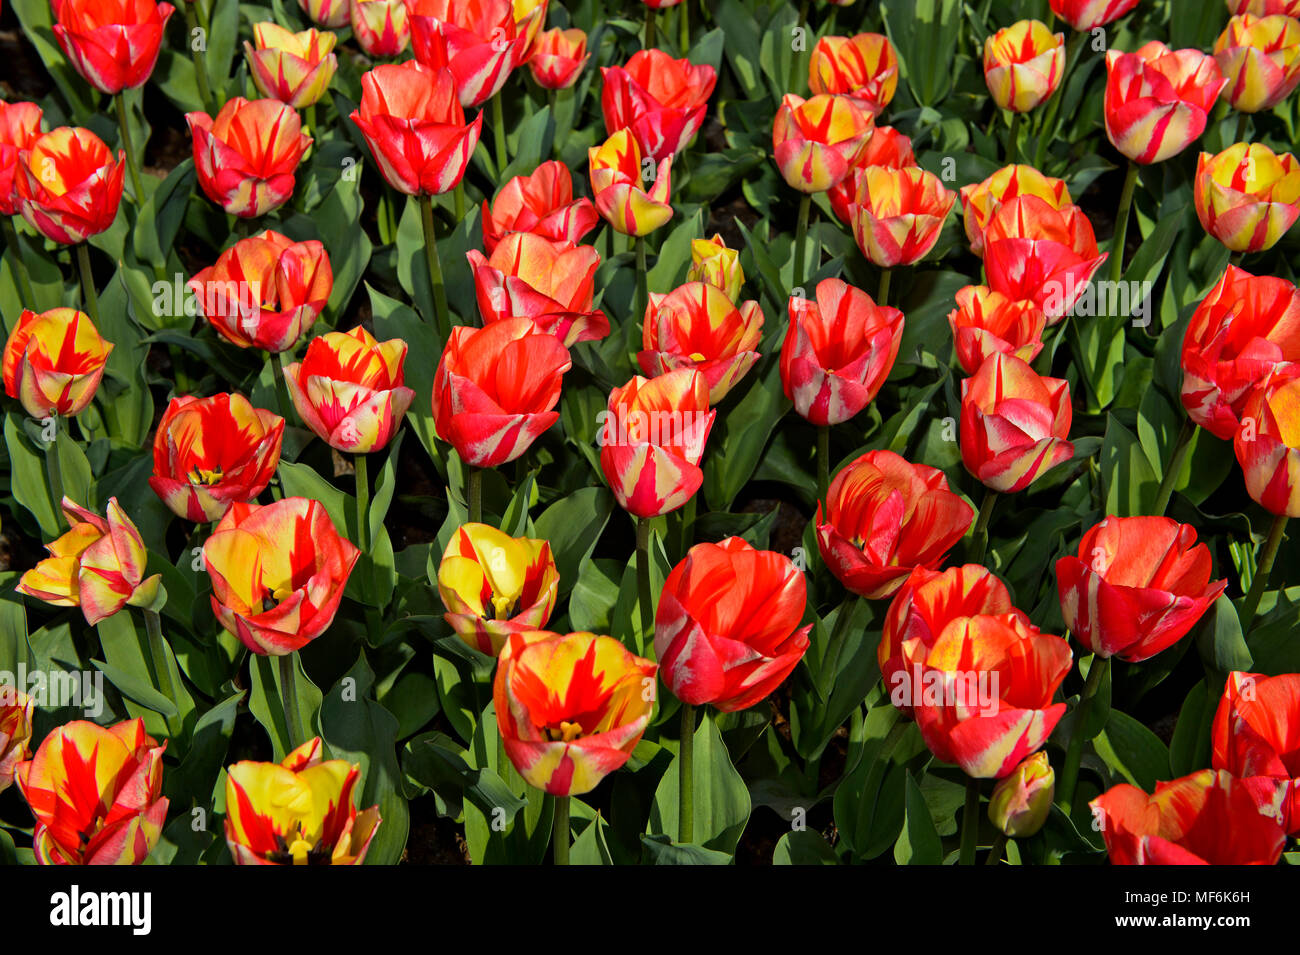 Salmon Colored Flowers Stock Photos & Salmon Colored Flowers Stock ...